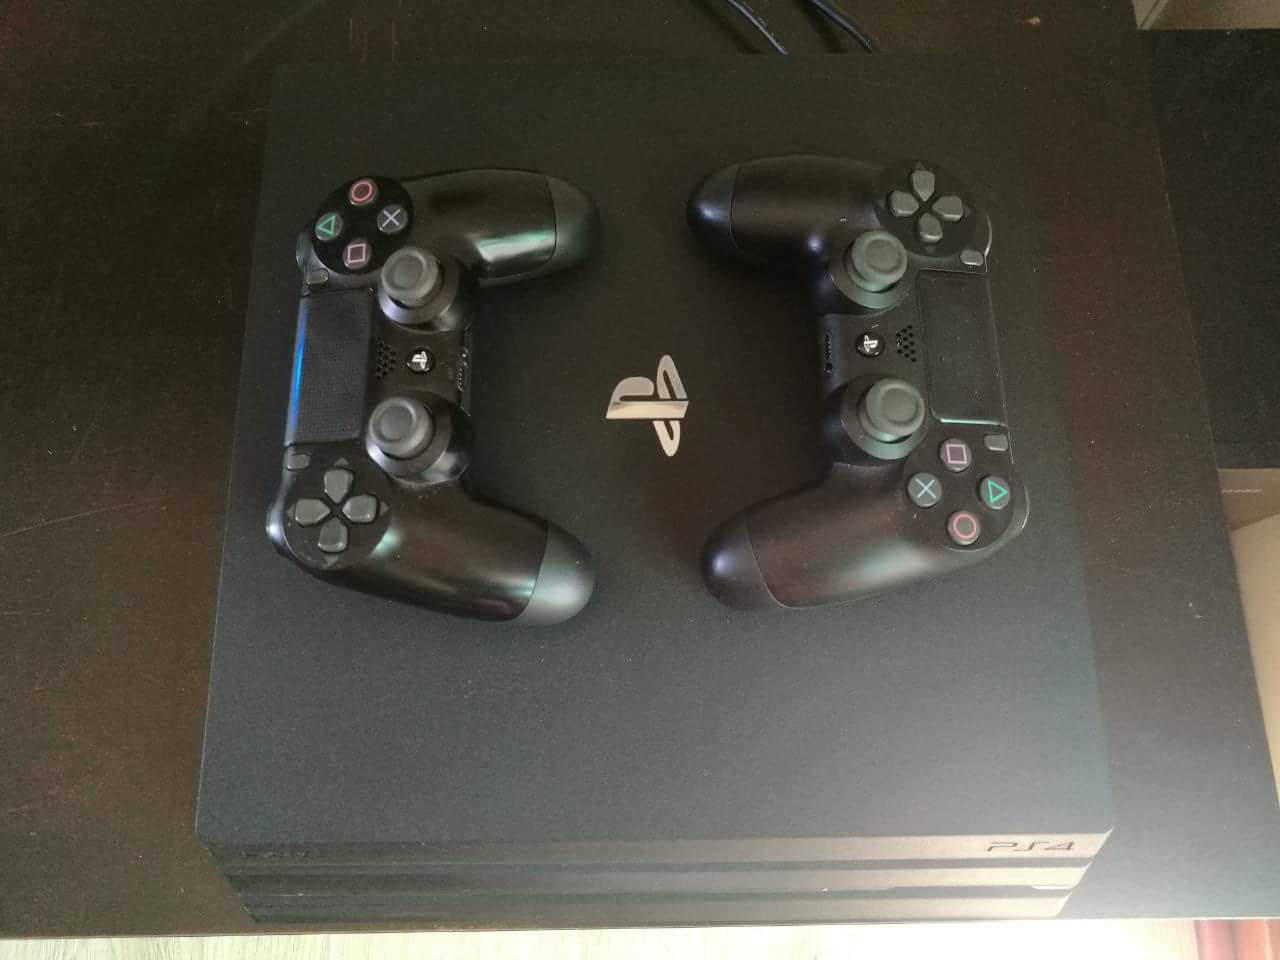 Playstation 4 console brand new and sealed for sale classifieds.